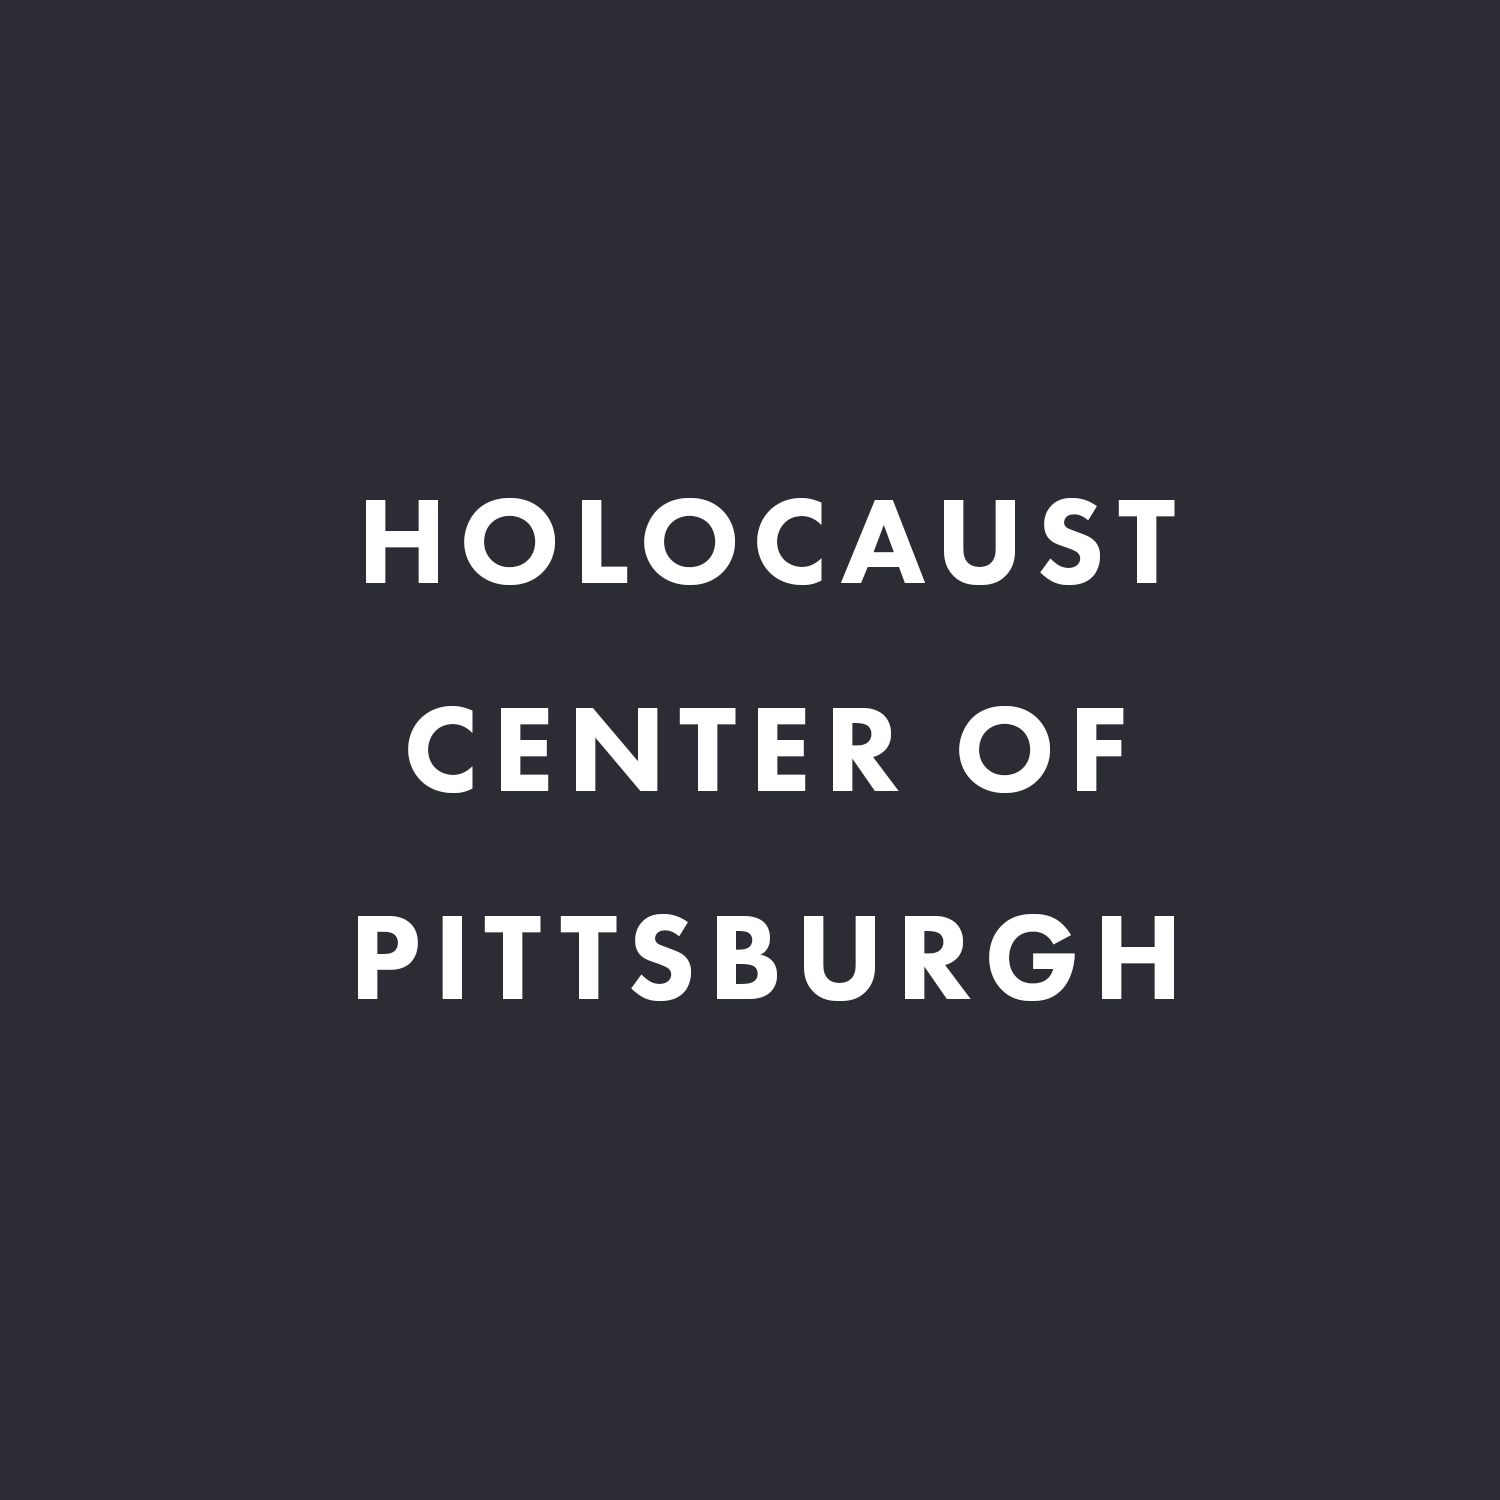 Holocaust Center of Pittsburgh